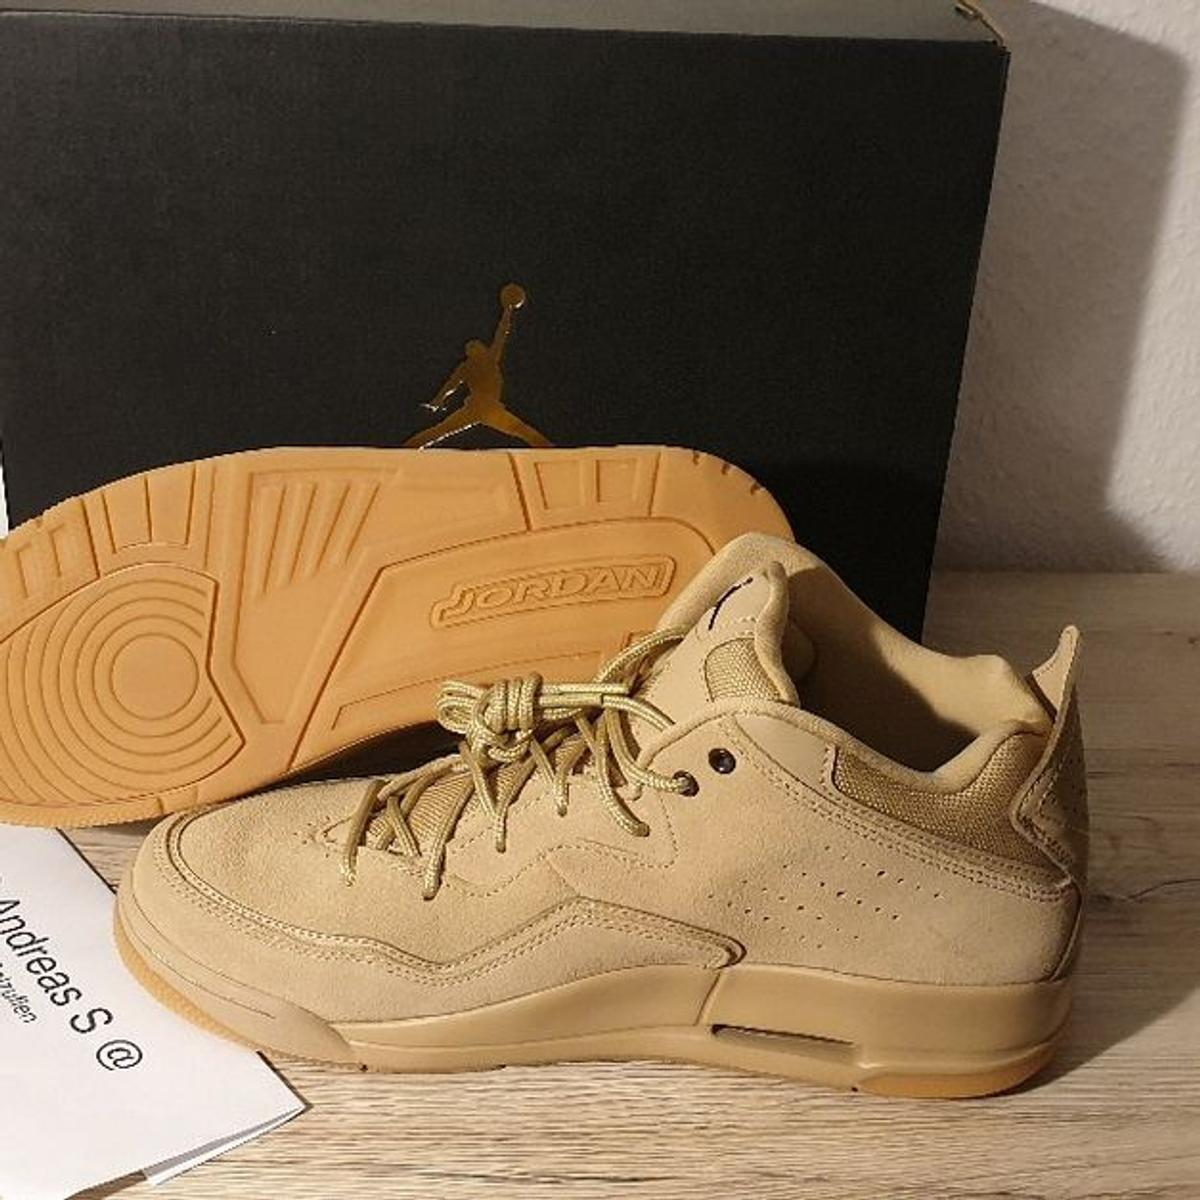 ab2ac647e83a3c Nike Jordan Courtside 23 WE Light Brown EU 43 in 32108 Bad Salzuflen ...